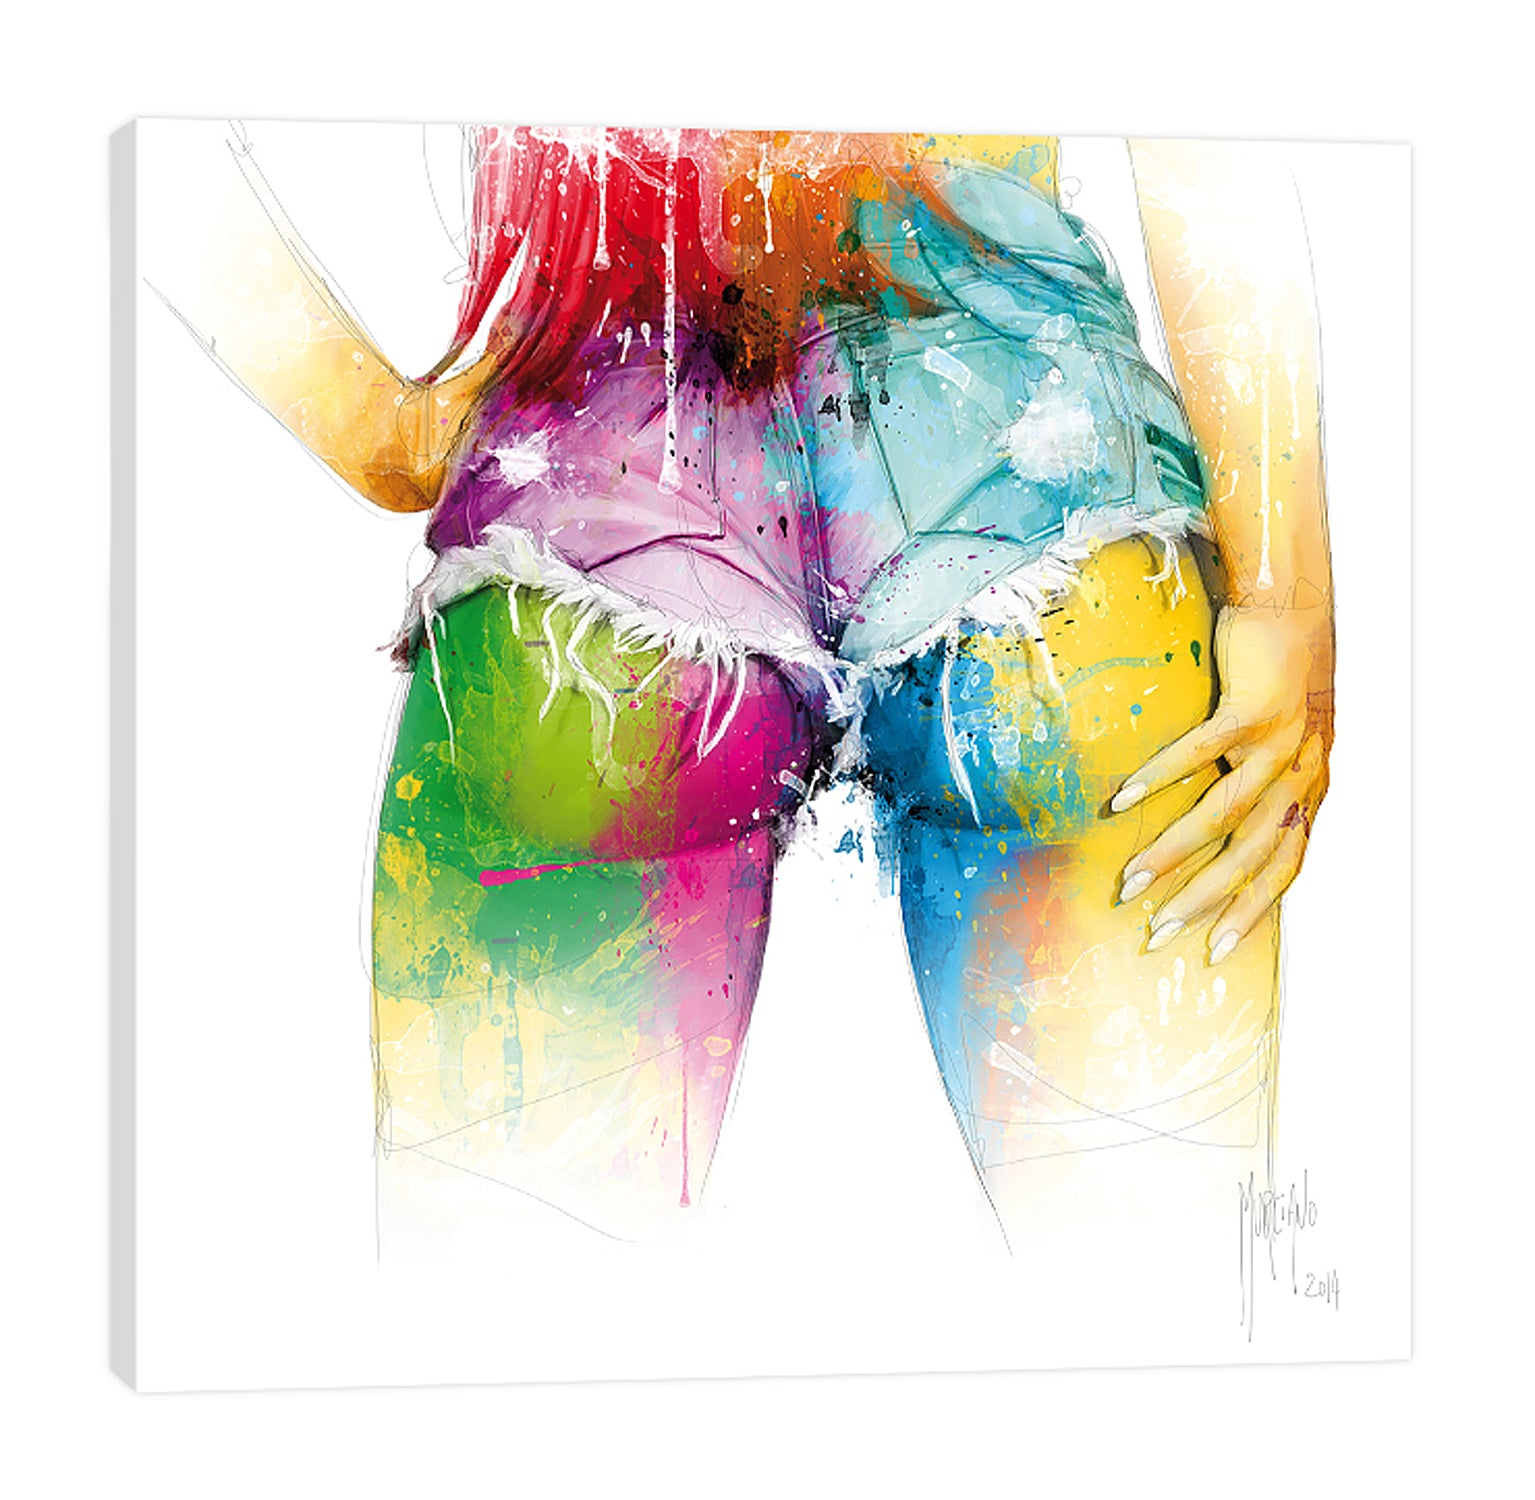 Patrice-Murciano,Modern & Contemporary,People,preston lee,woman,lady,butt,shorts,jeans,ombre,fashion,splatters,Pale Yellow,White,Purple,Blue,Salmon Pink,Cranberry Red